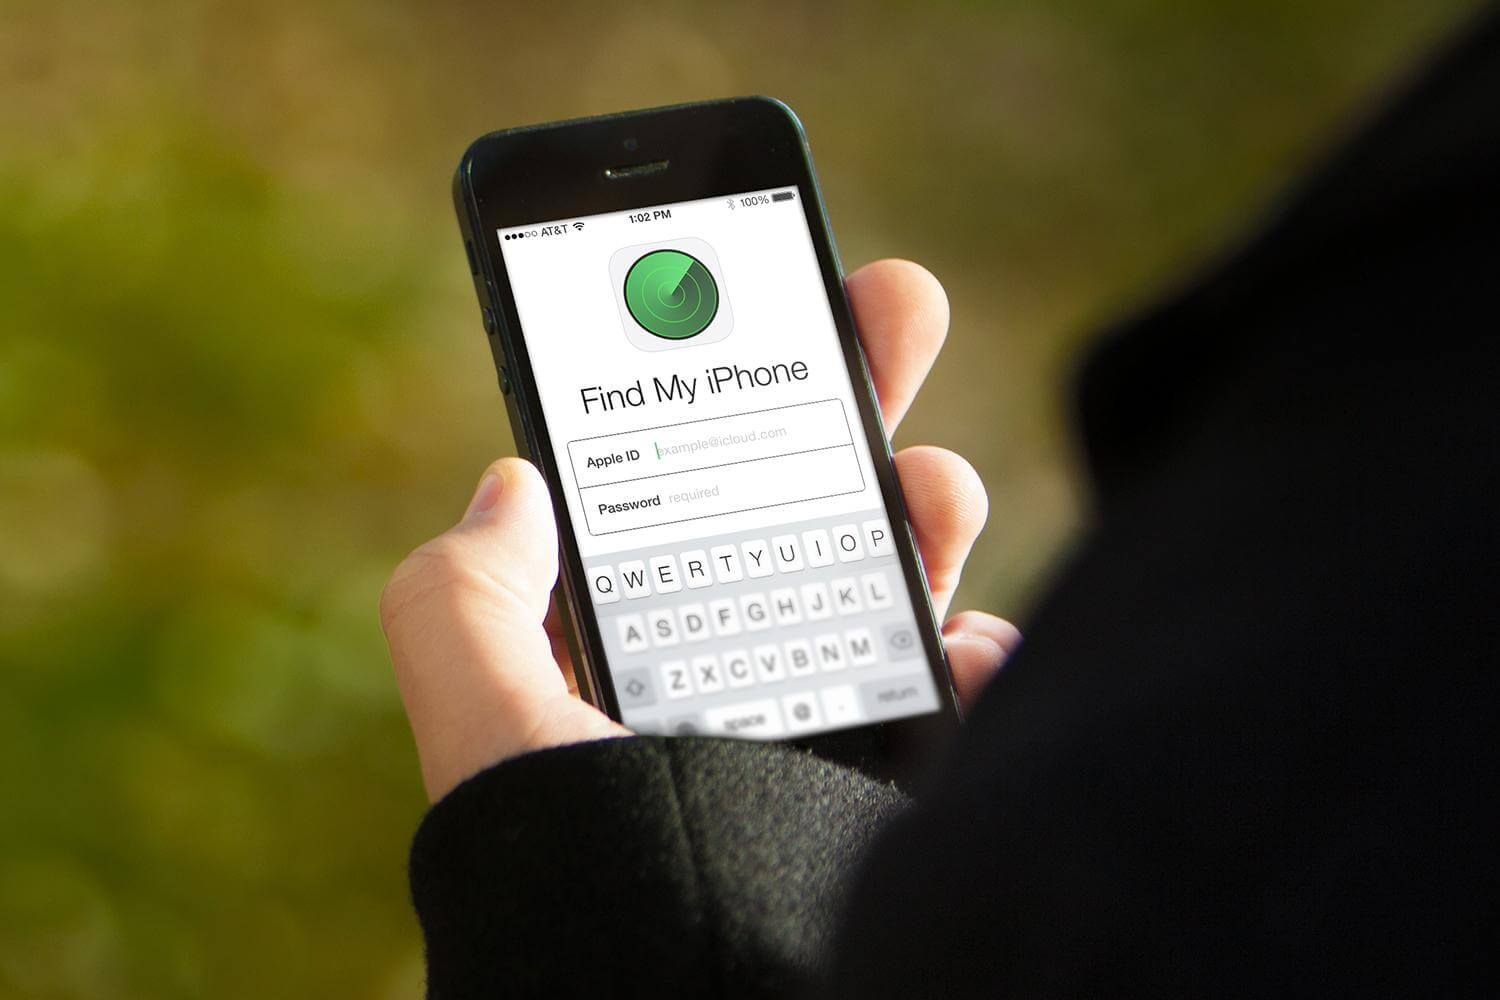 6 people who used Find My iPhone to confront phone thieves